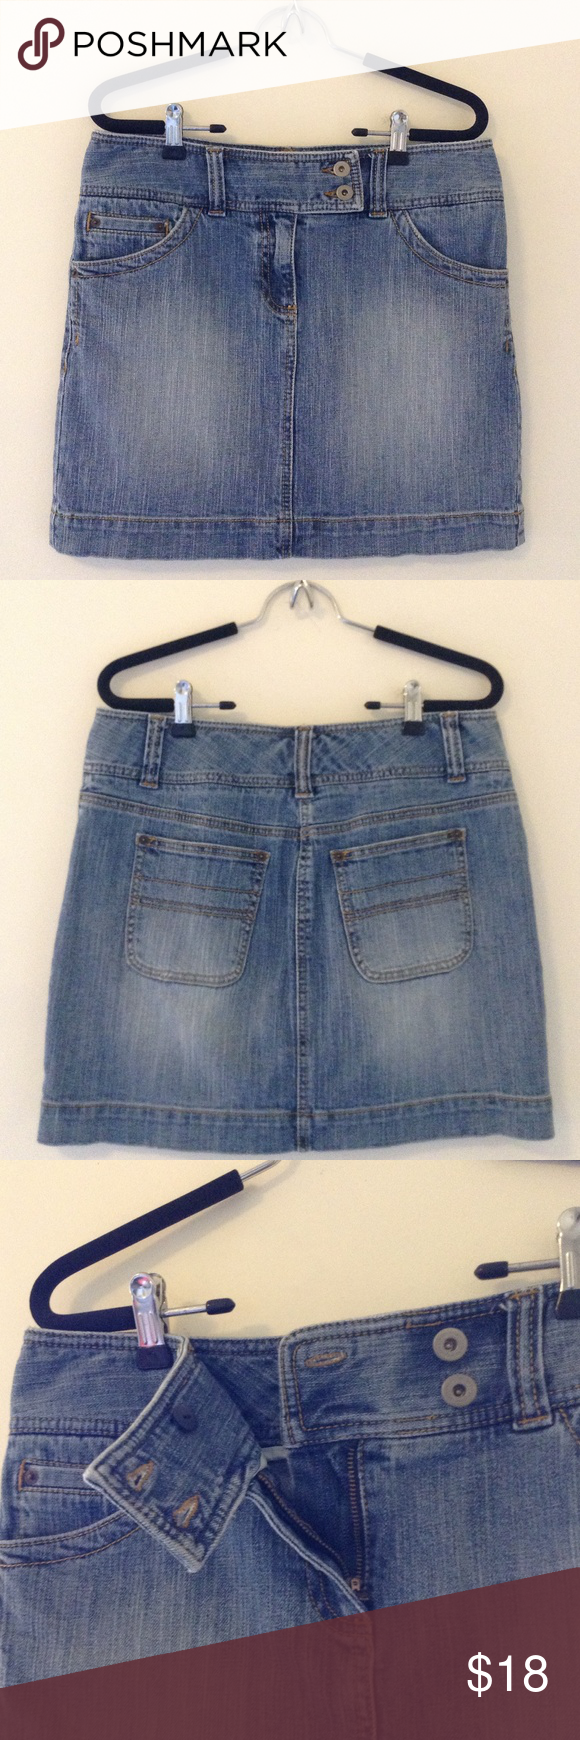 Ann Taylor LOFT denim skirt 99% cotton 1% spandex classic denim mini skirt. LOFT Skirts Mini